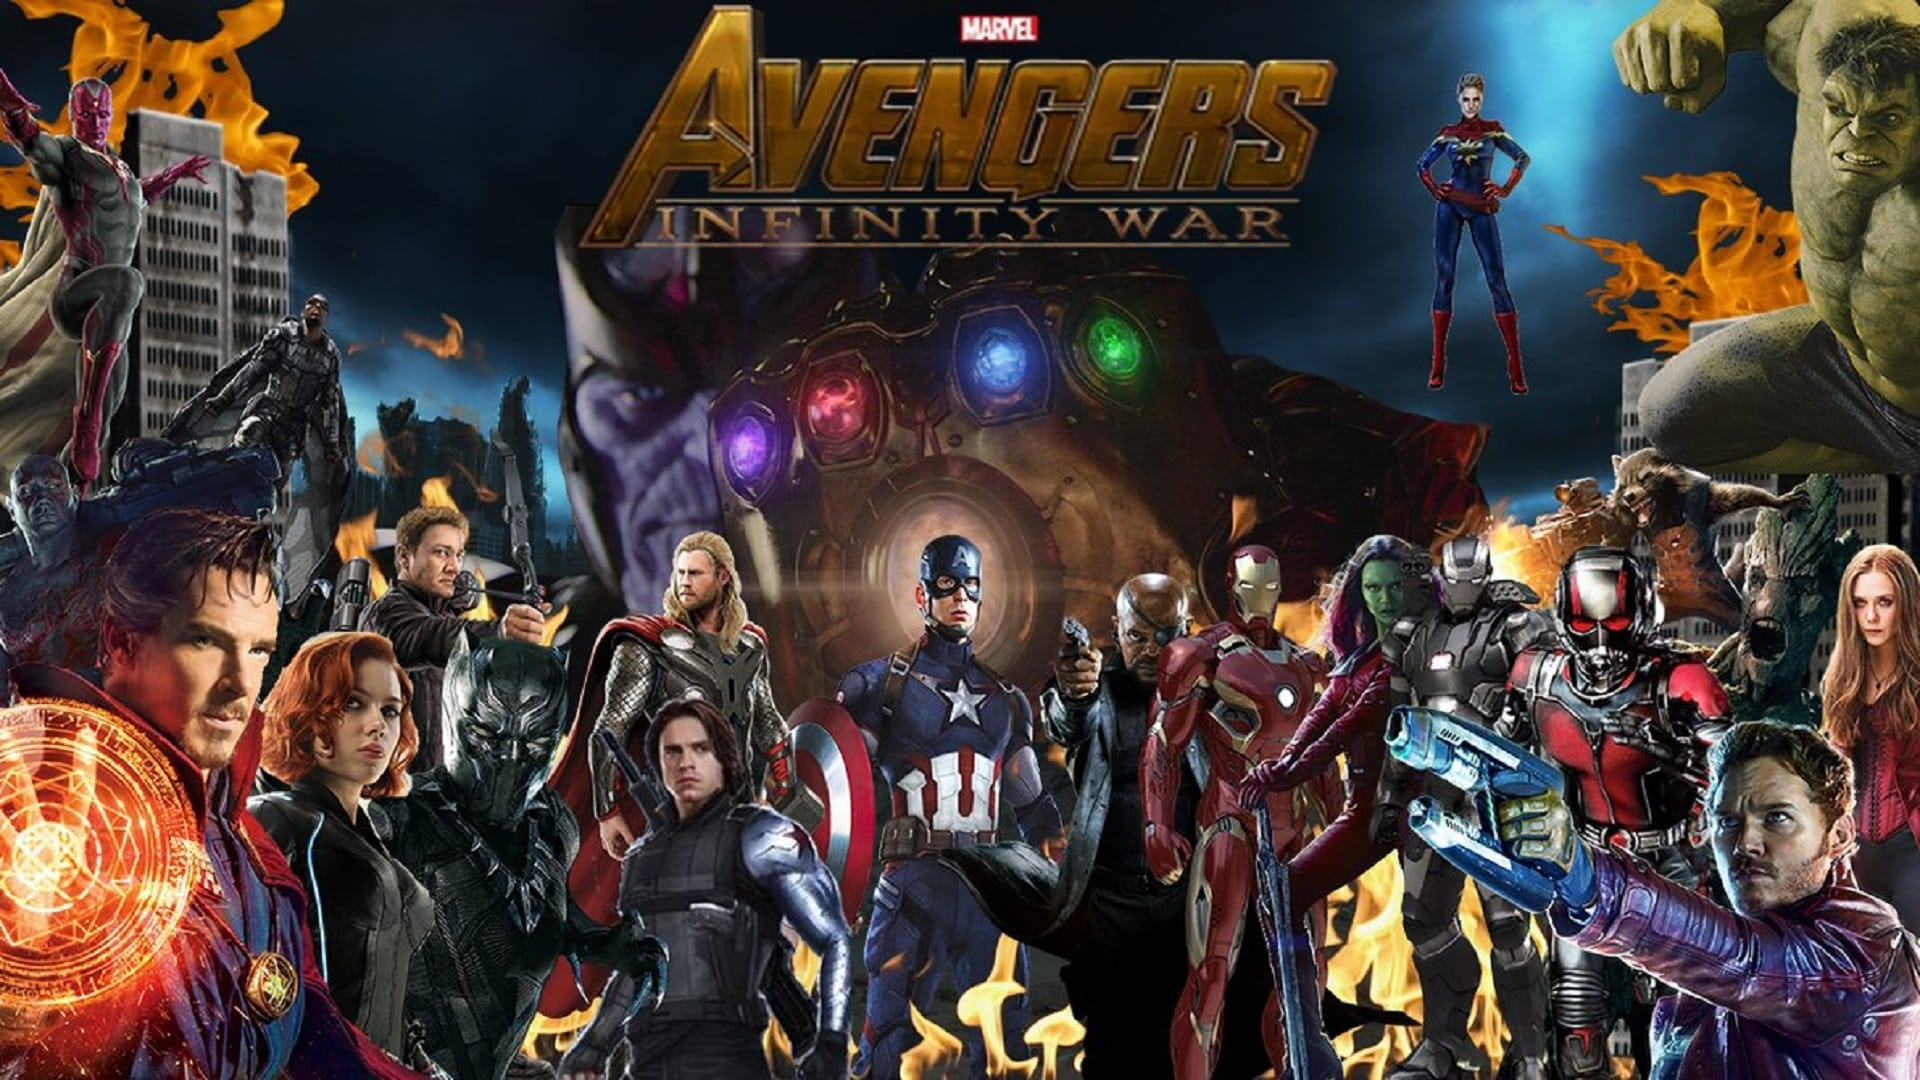 Infinity War Avengers Rating